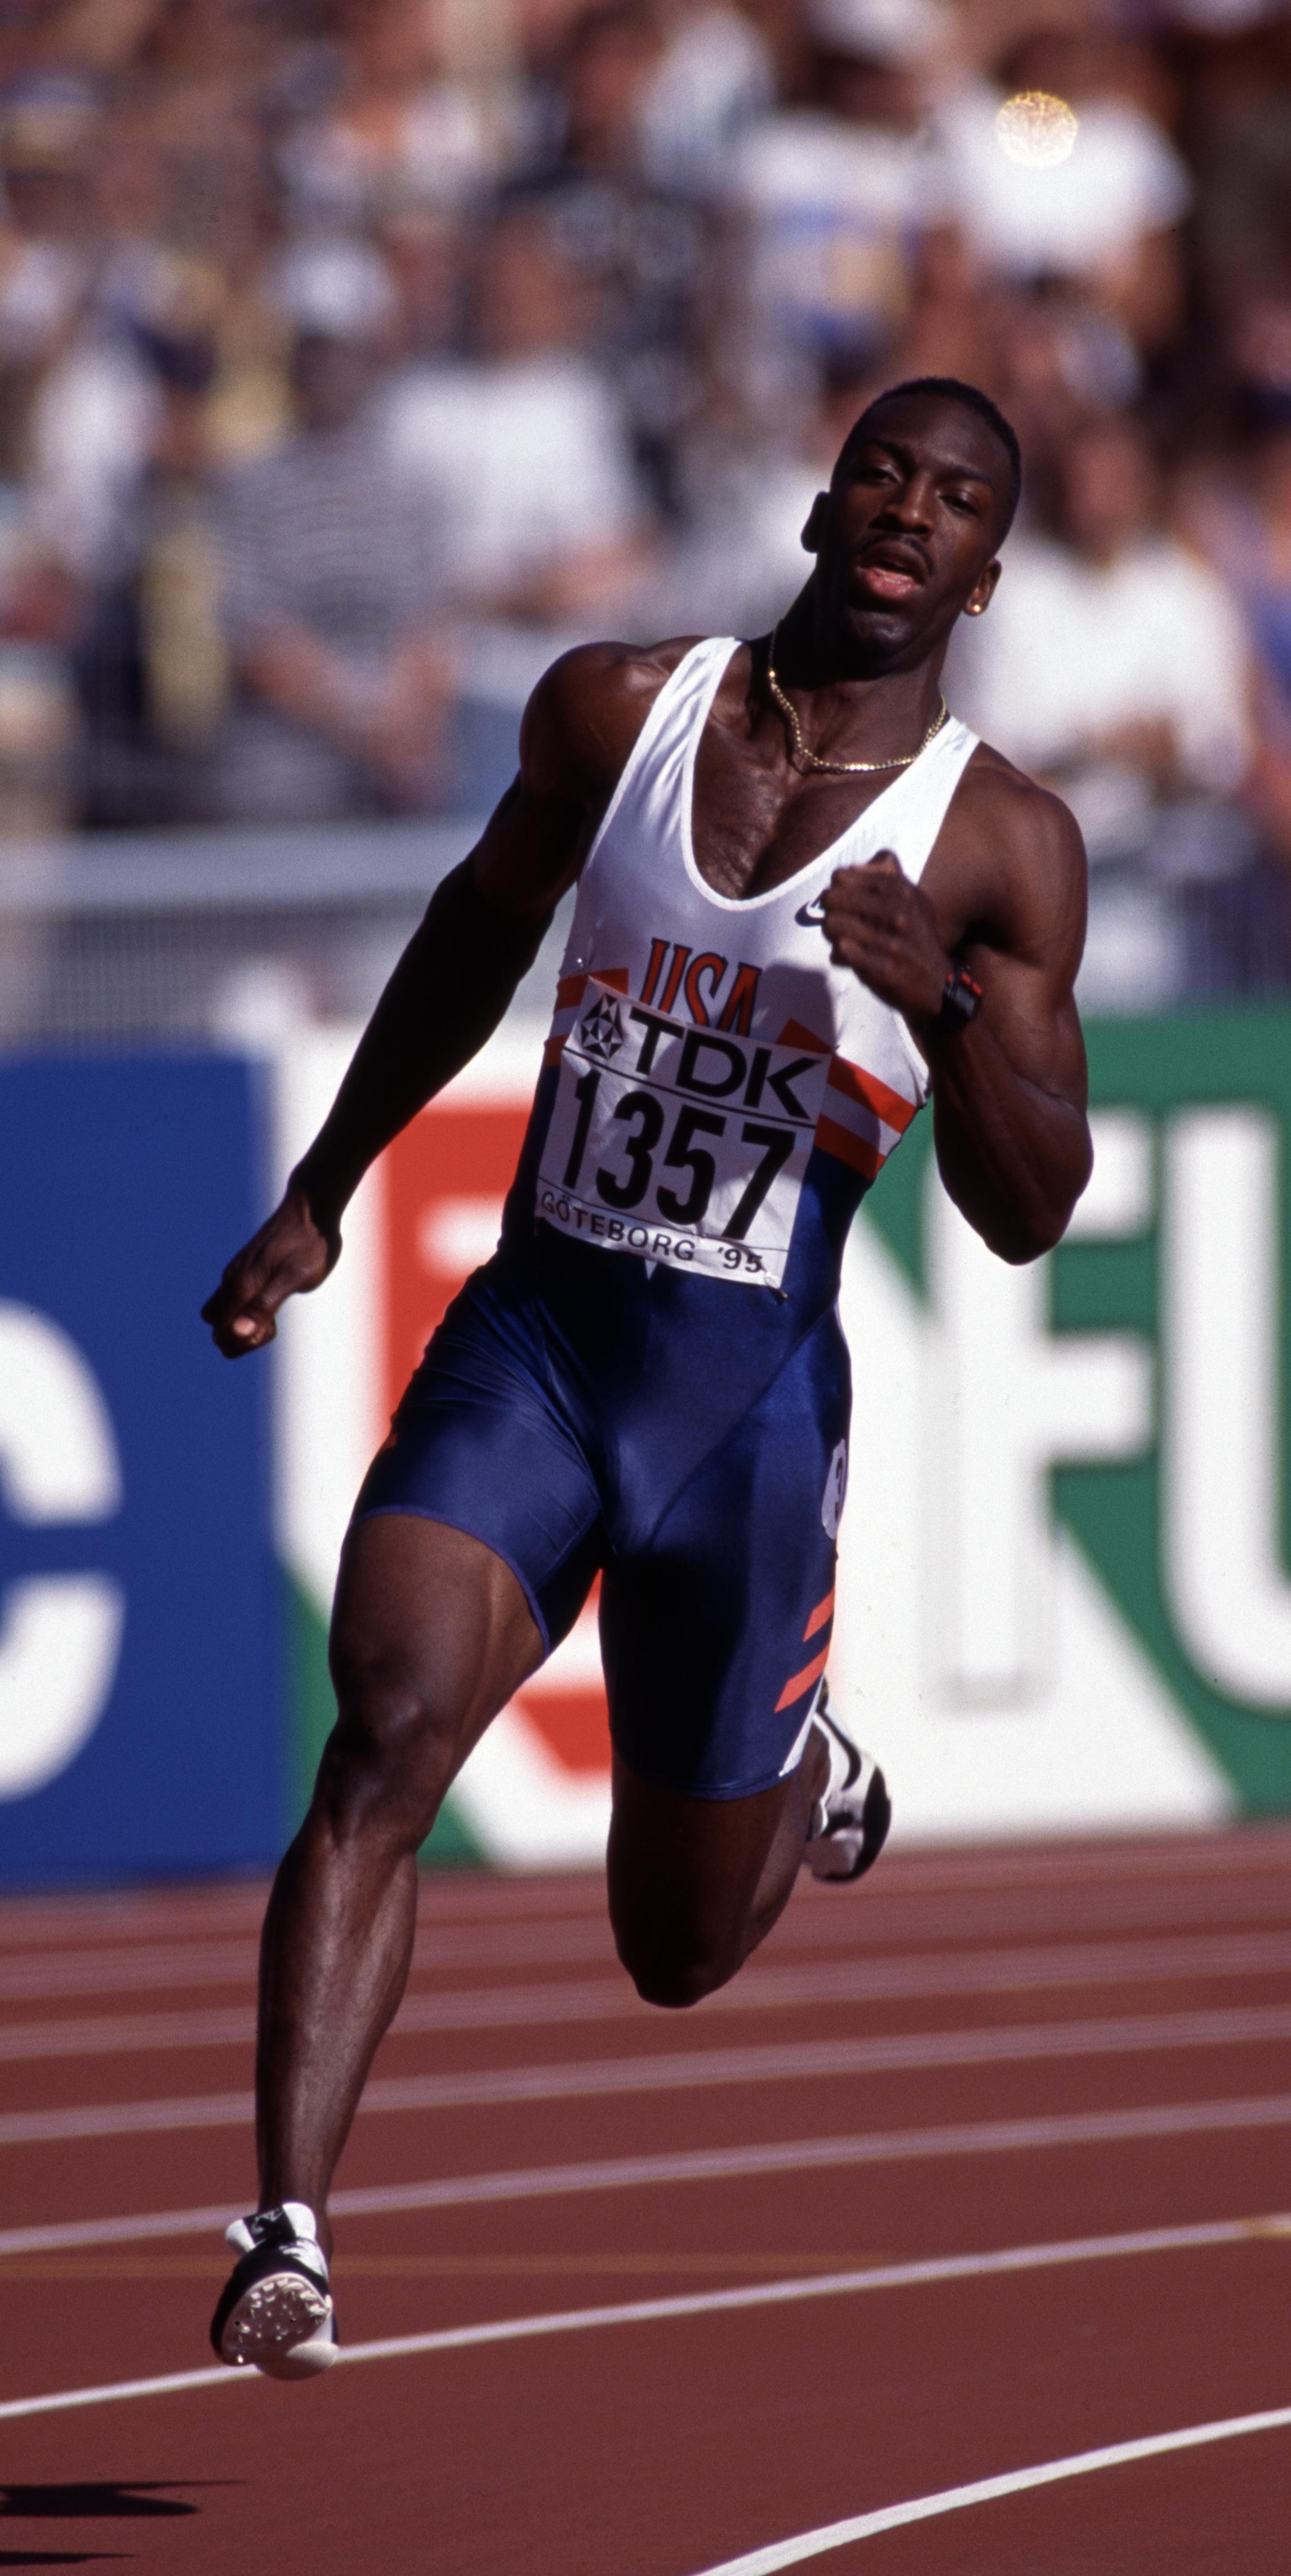 Michael Johnson was once the fastest man over 200m and 400m in the world